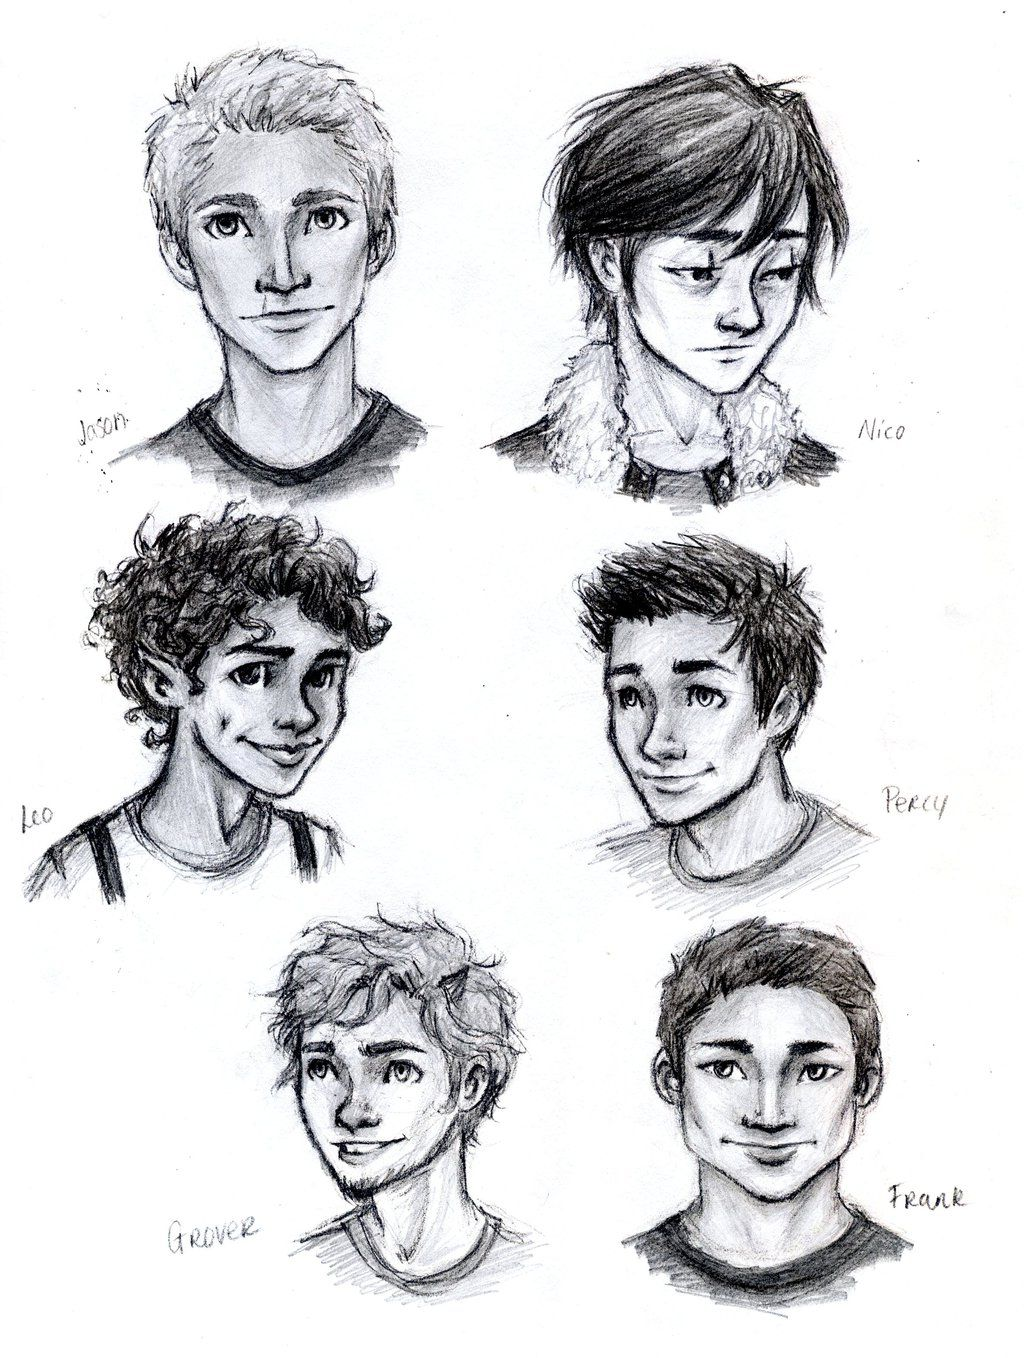 Percy Jackson Boys by meabhdeloughry.deviantart.com on